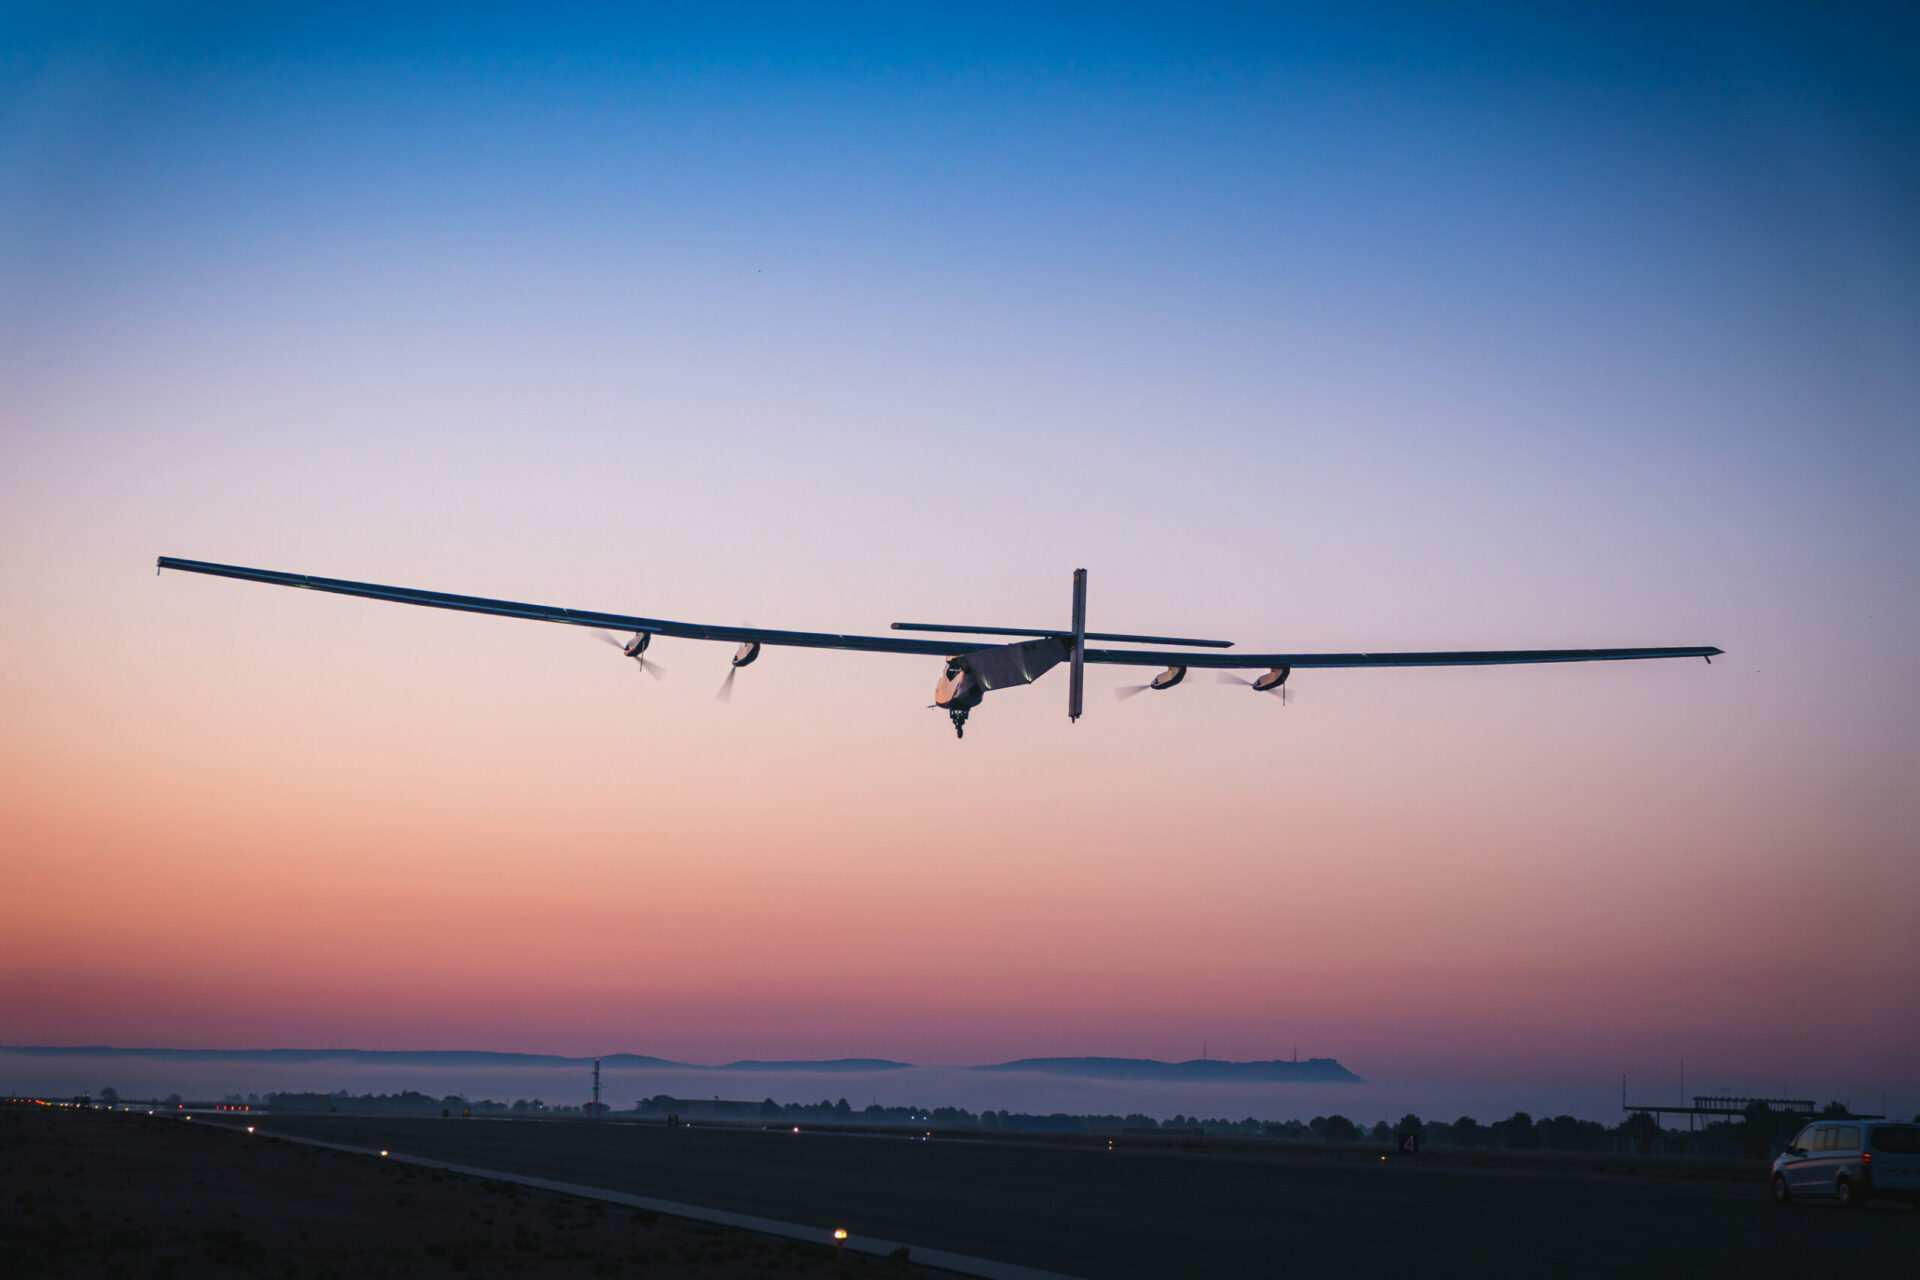 Watch: Oklahoma aerospace company developing solar-powered drone that could fly for months without landing